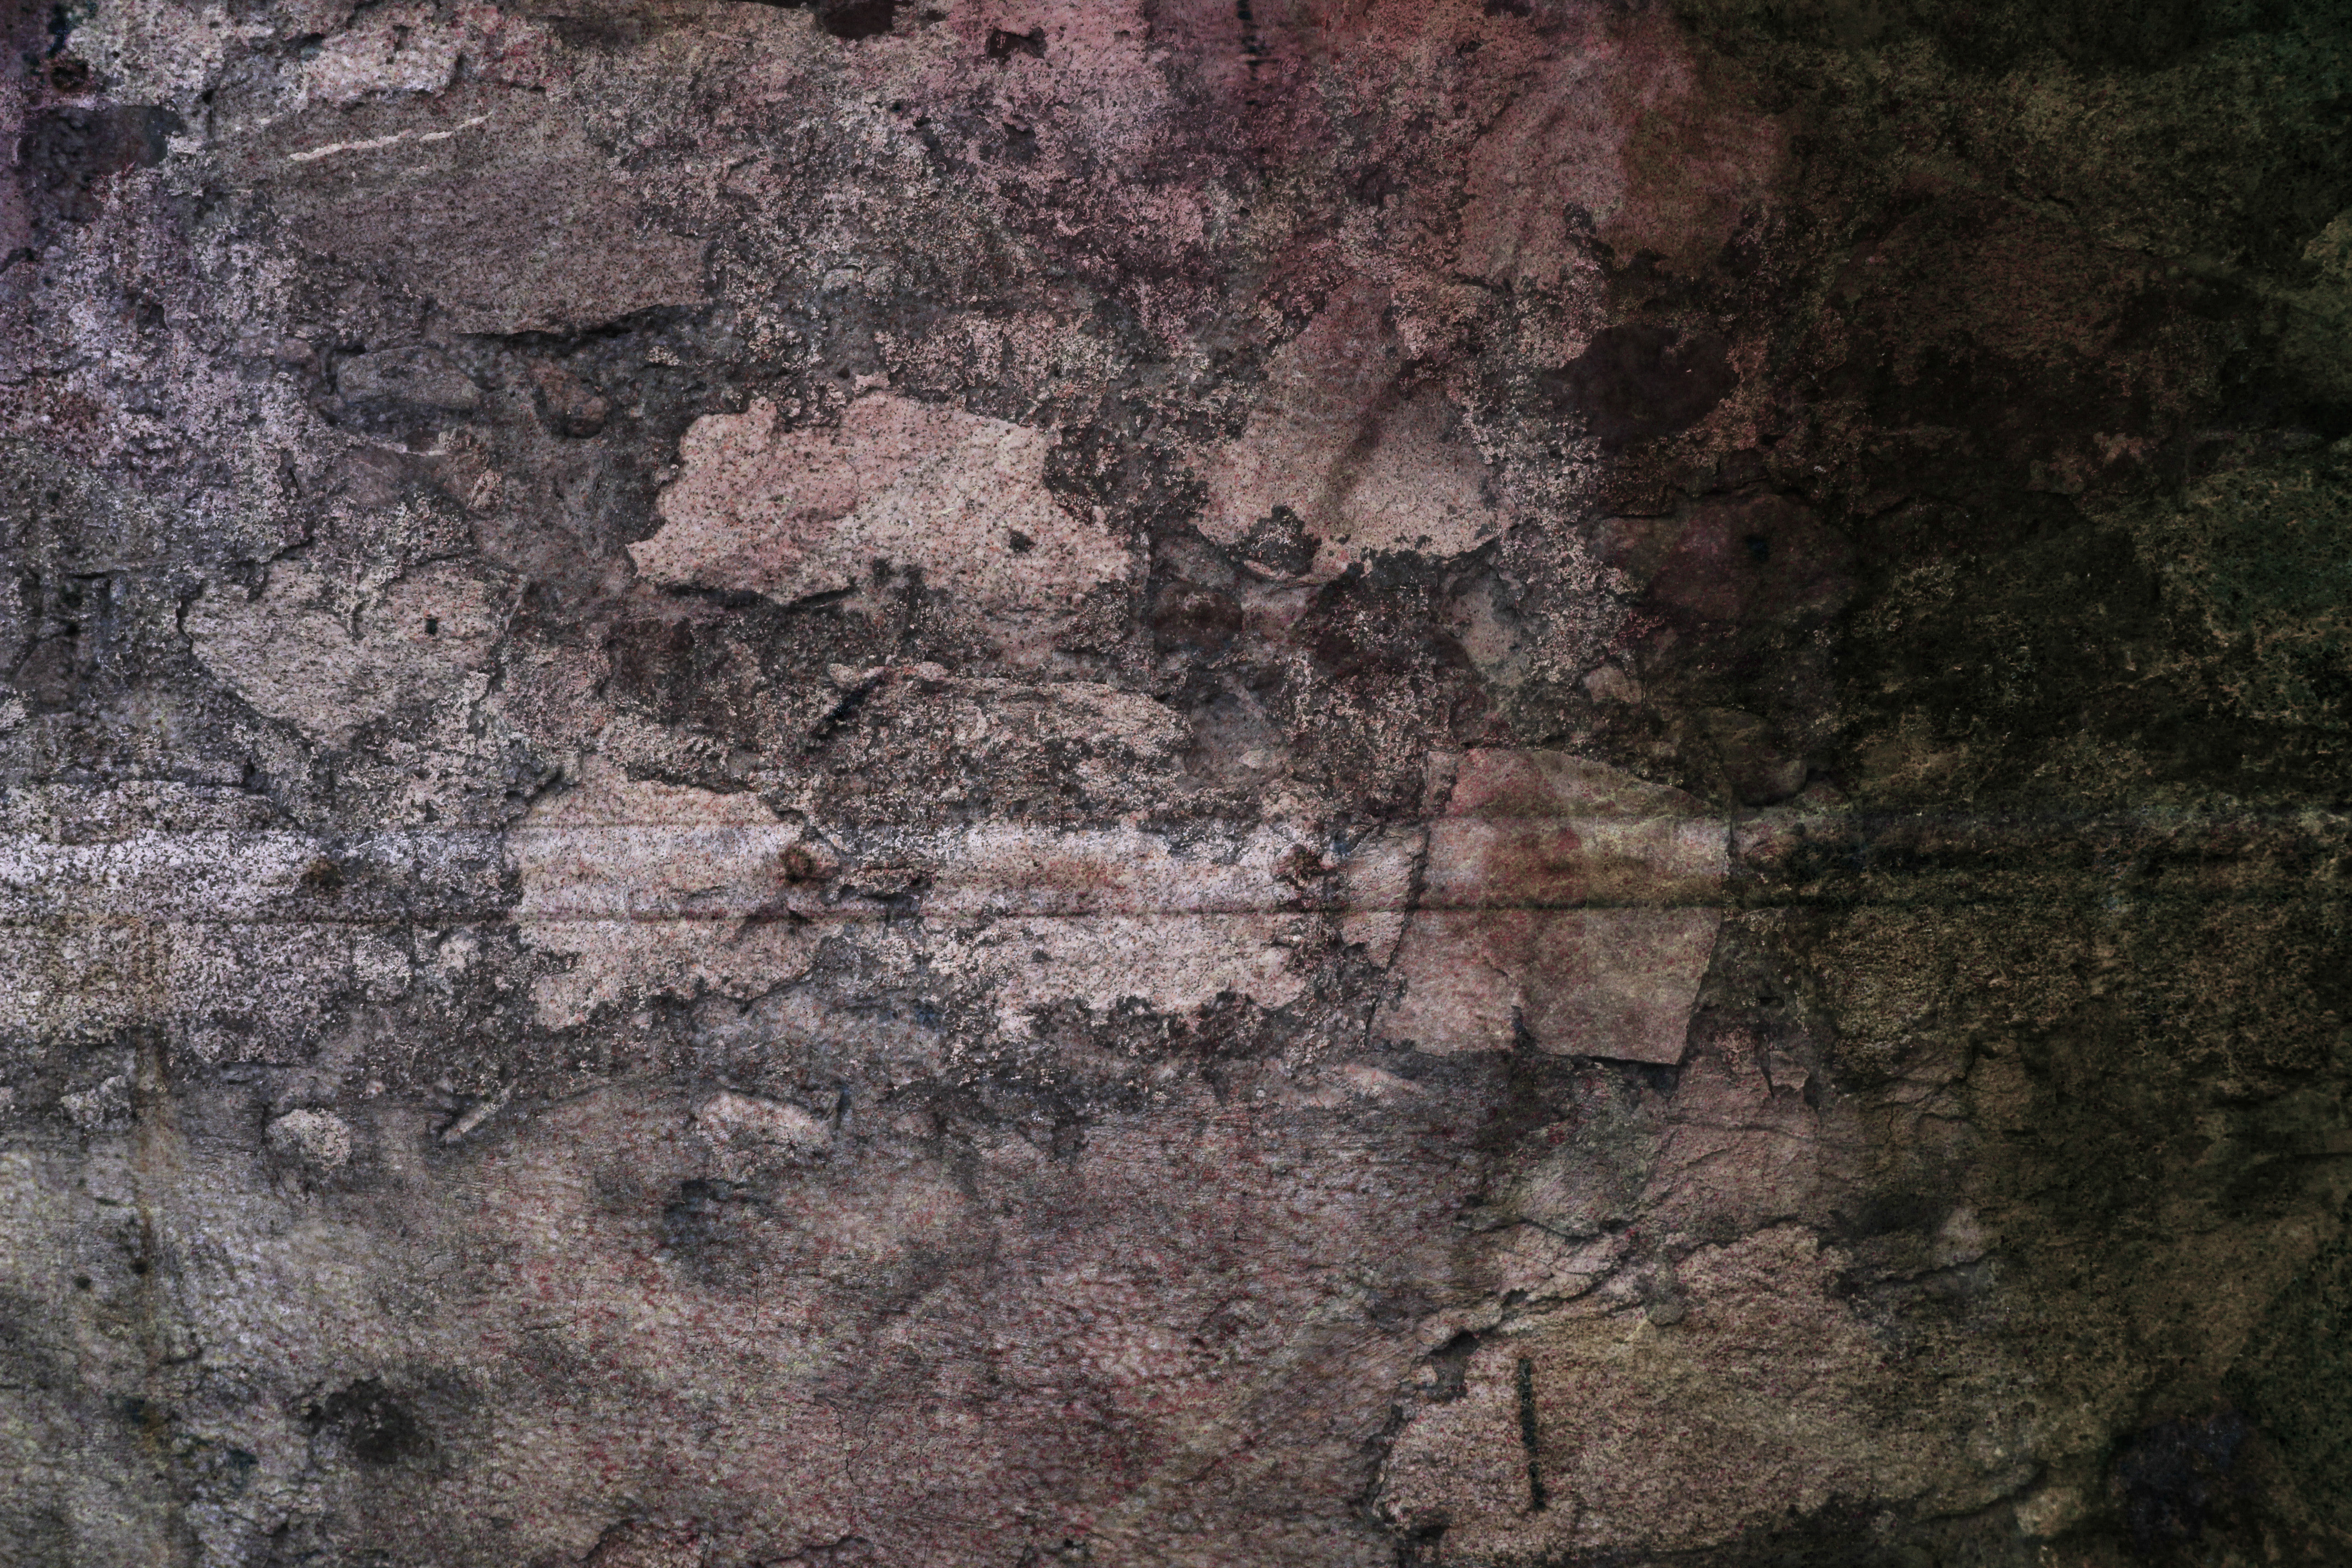 Grunge Textures Archives - Page 6 of 9 - Texture X